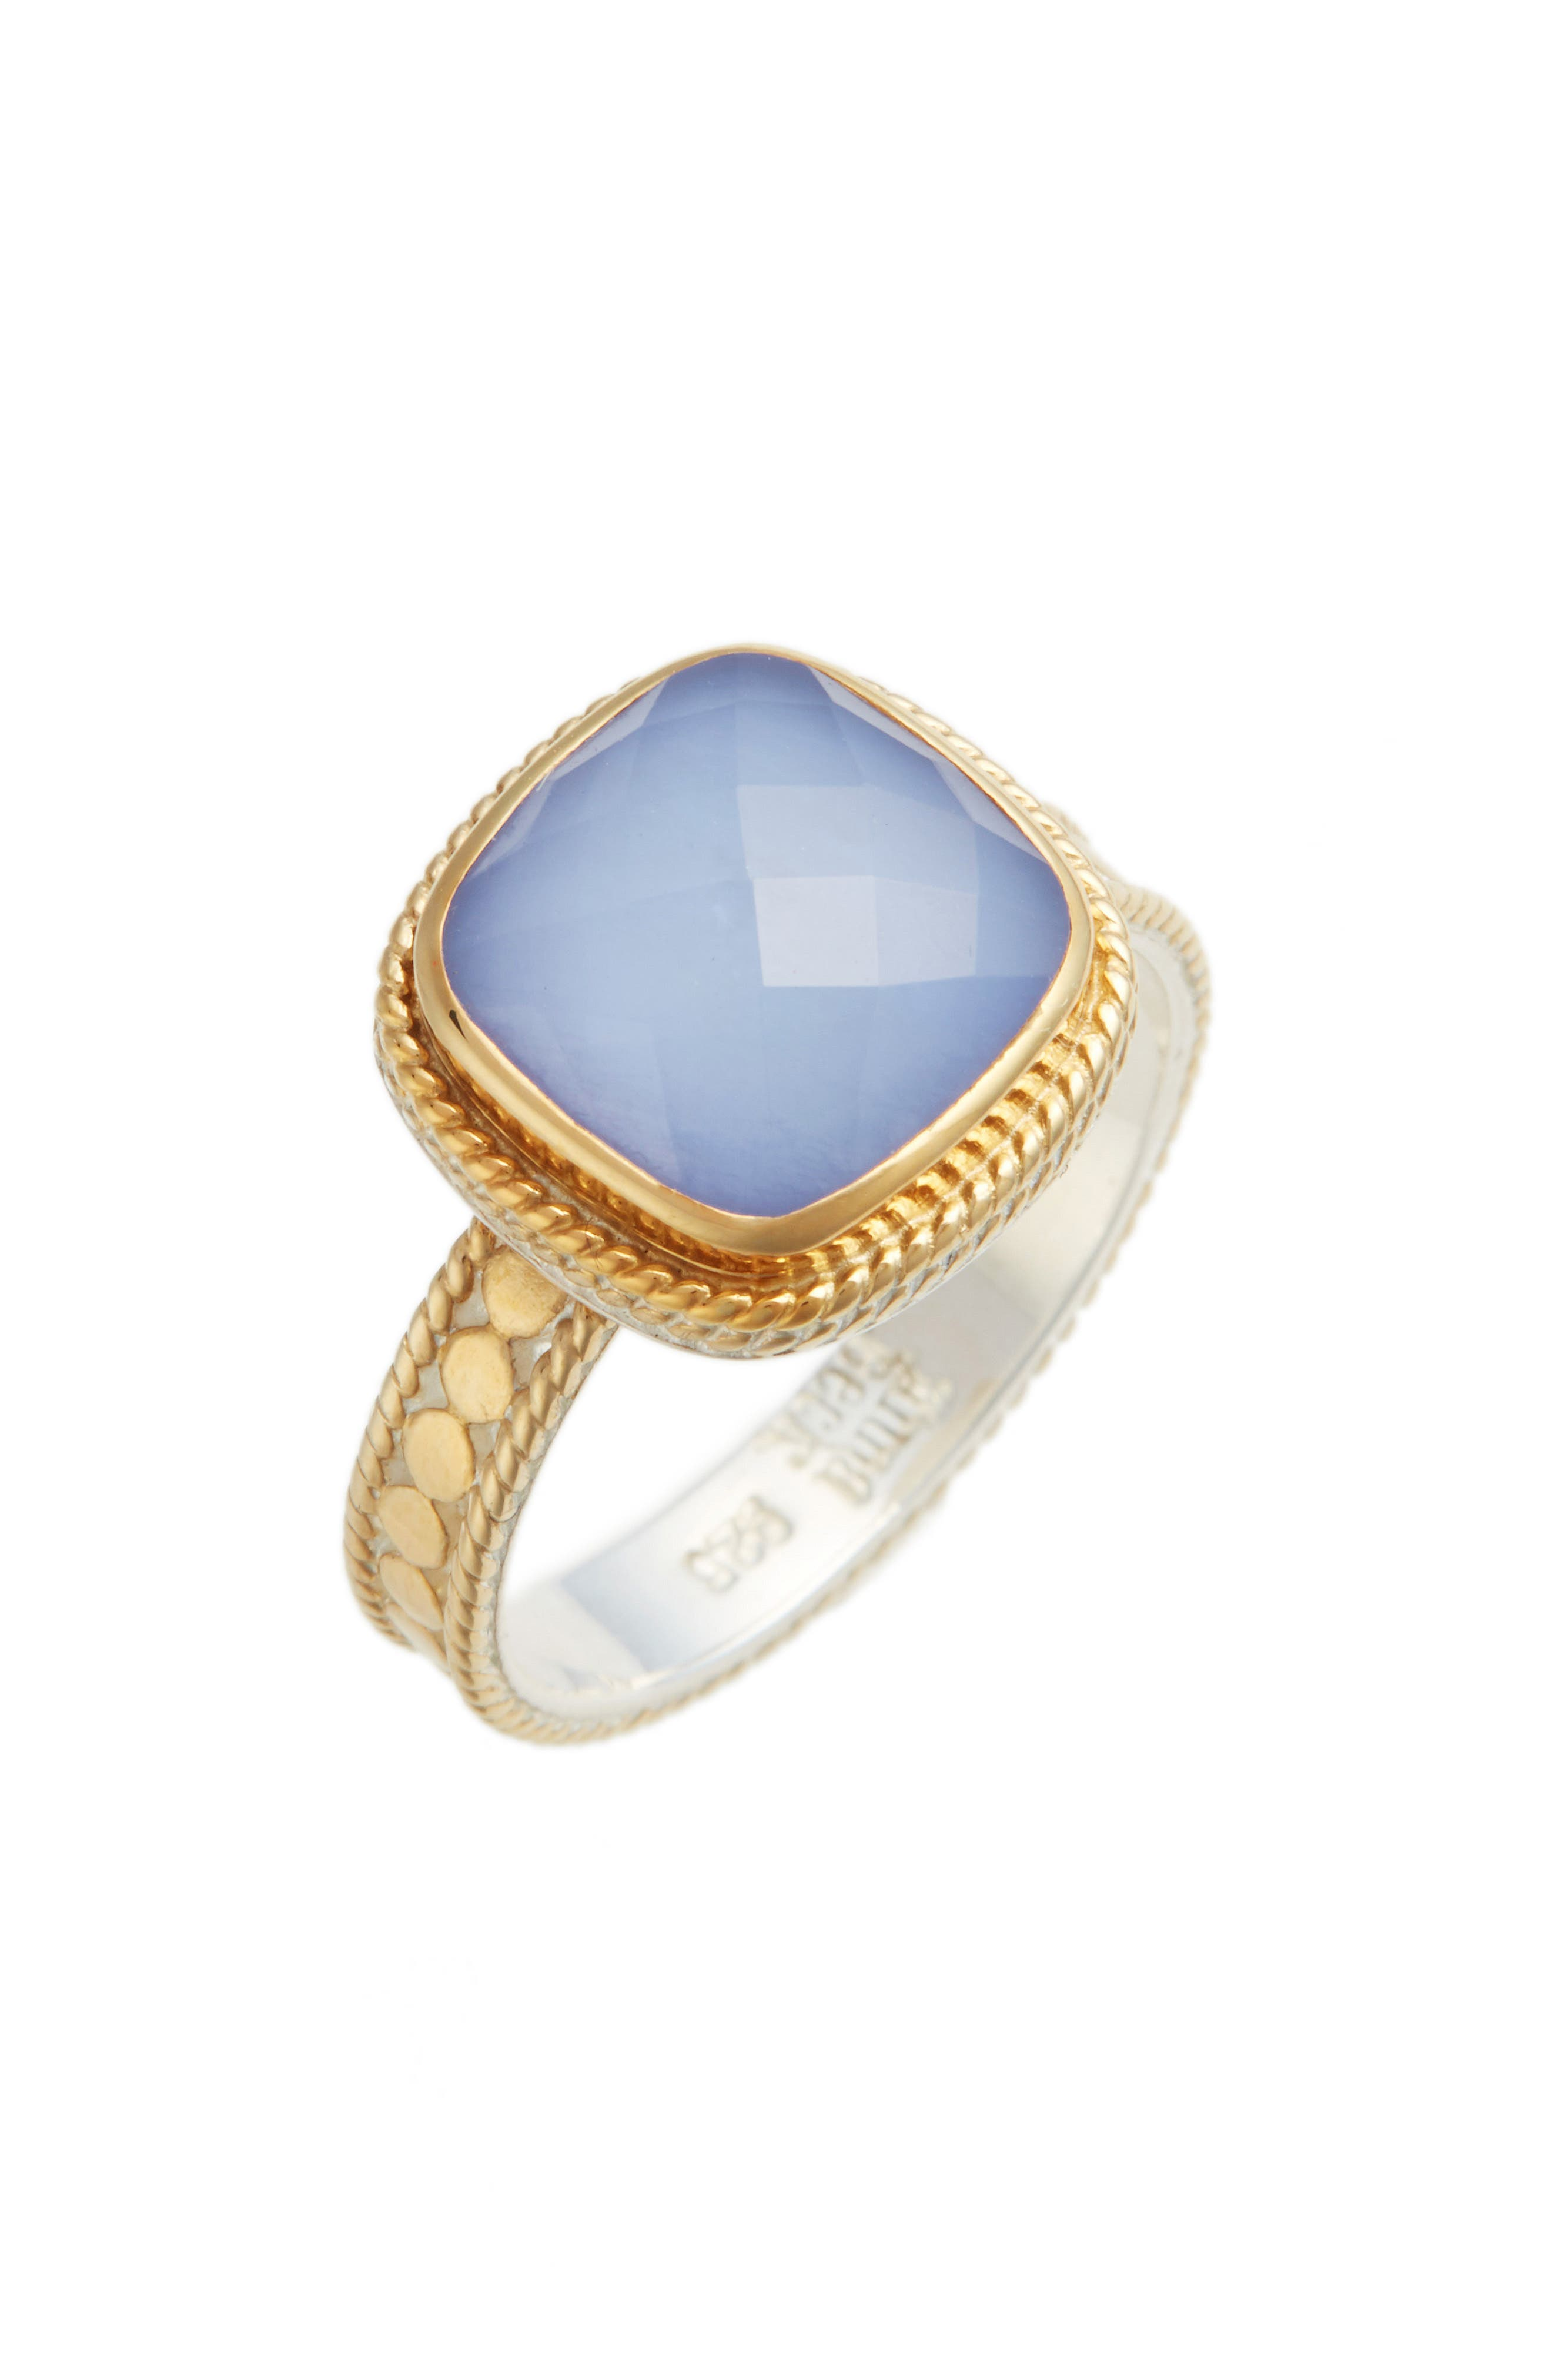 Blue Chalcedony Cushion Ring,                         Main,                         color, Gold/ Blue Chalcedony